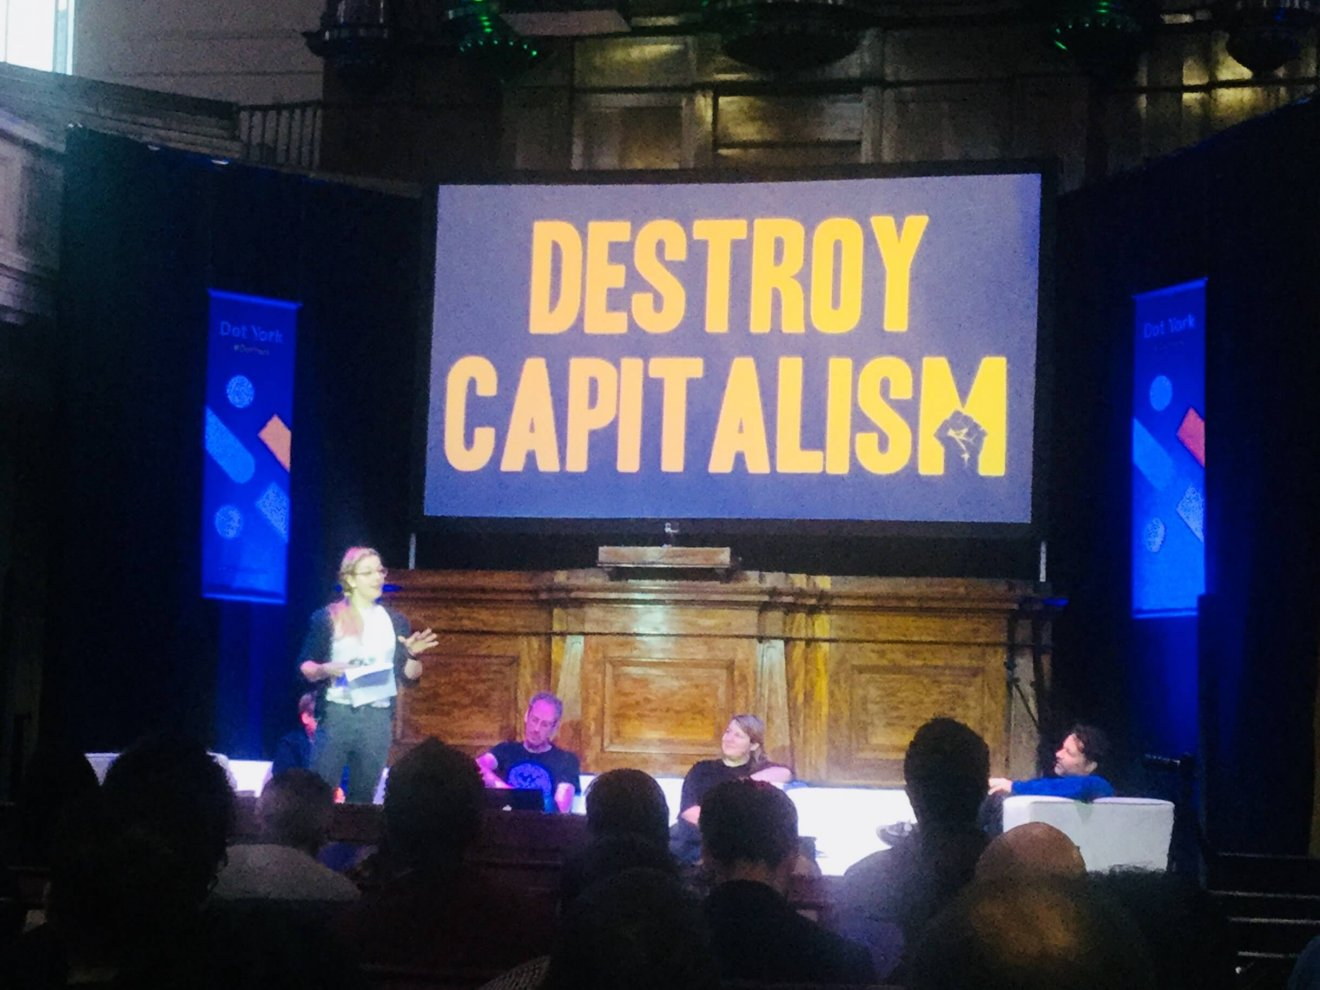 Destroy Capitalism speech